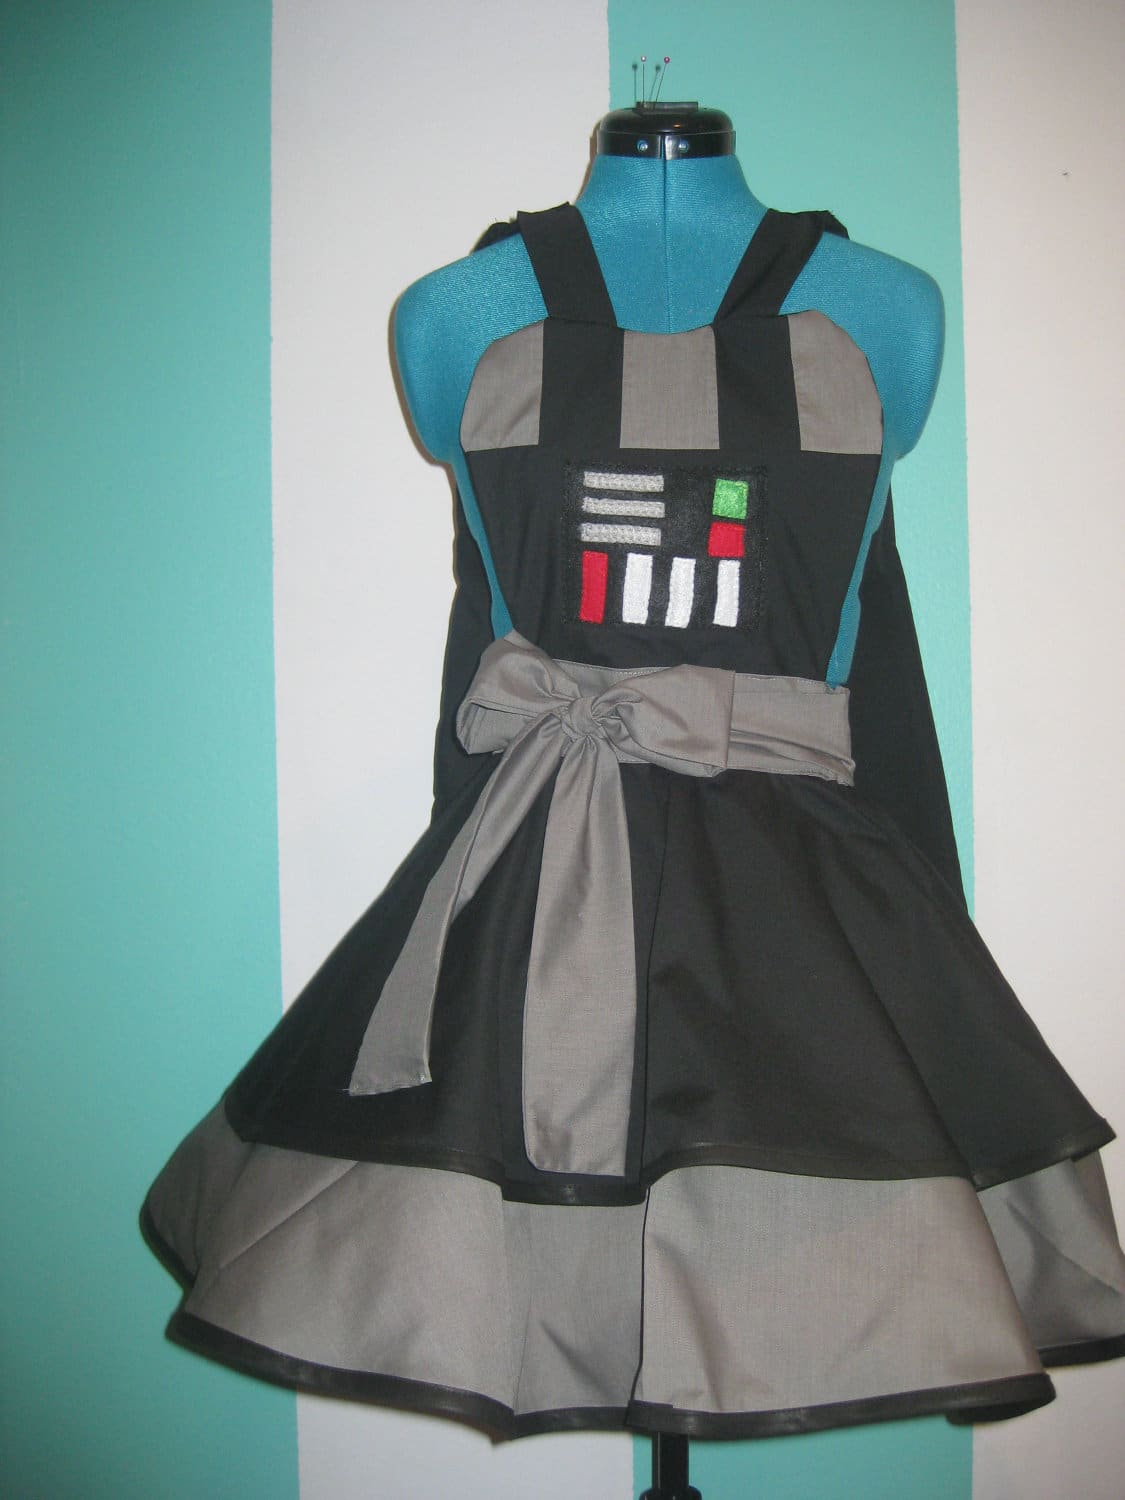 Darth Vader Apron Pinafore Will Make You The Ruler Of All